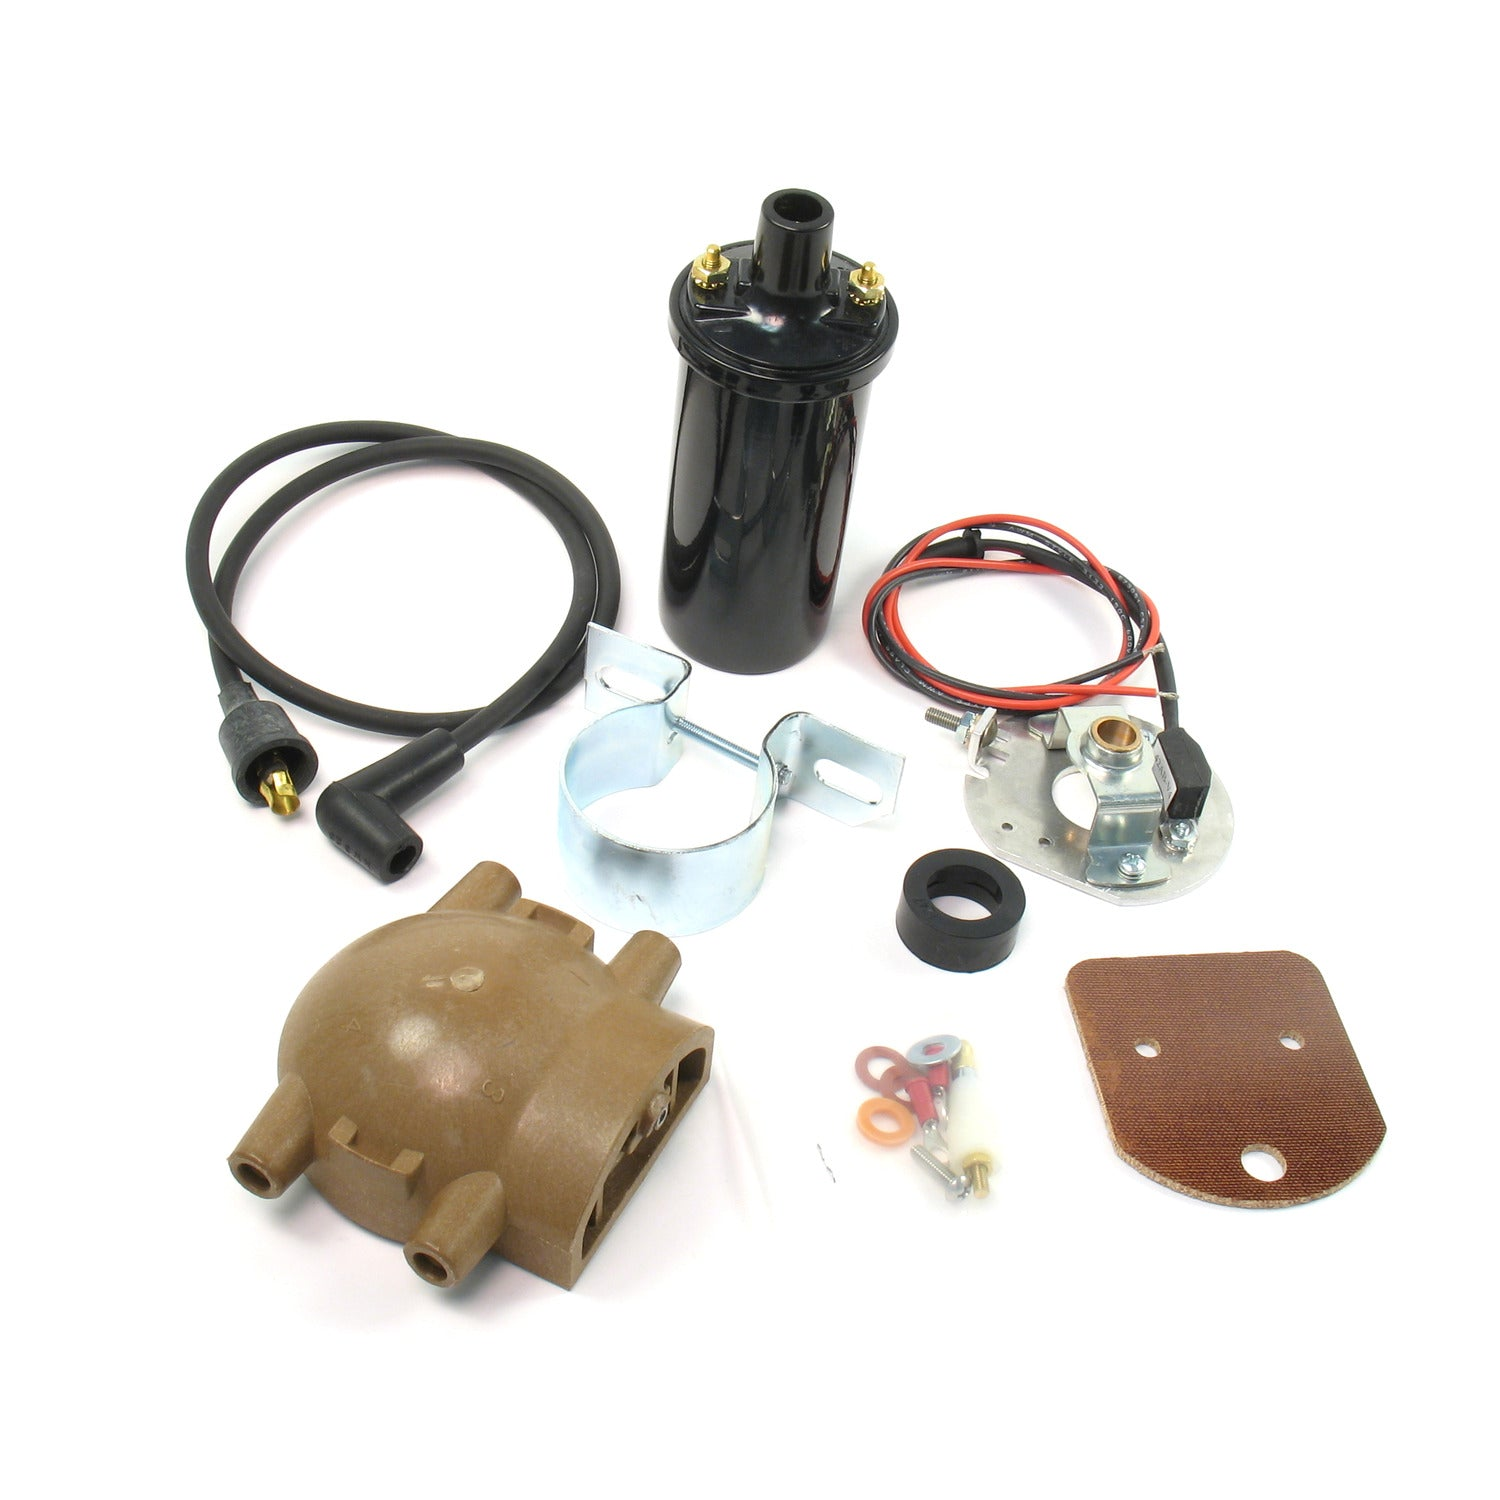 PerTronix 1247XT Ignitor Ford 4 cyl with External Coil